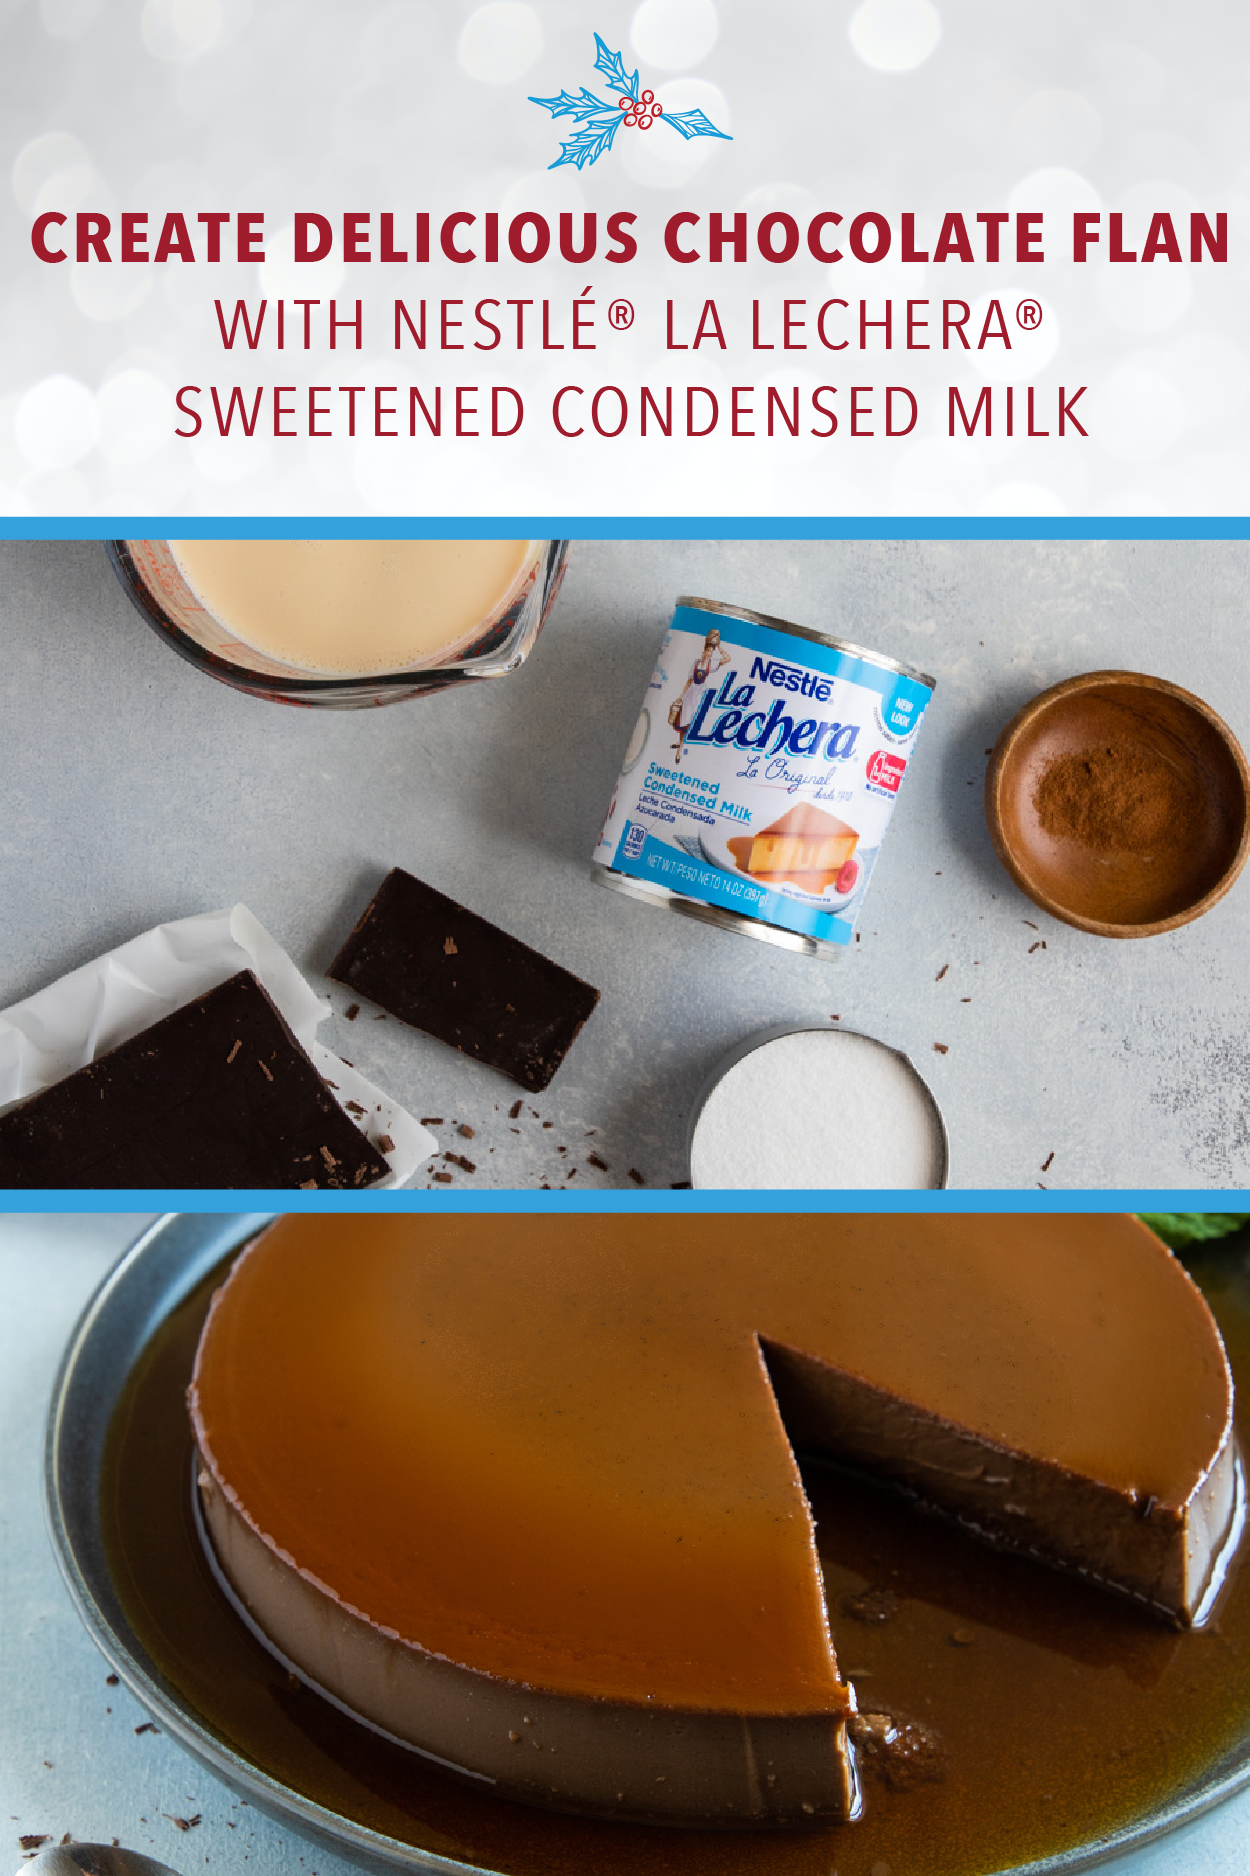 Simply Delicious Desserts Made With Nestle La Lechera Sweetened Condensed Milk Are The Best Way To Entertain Your Family And Fr Dessert Ideer Mat Deilig Mat